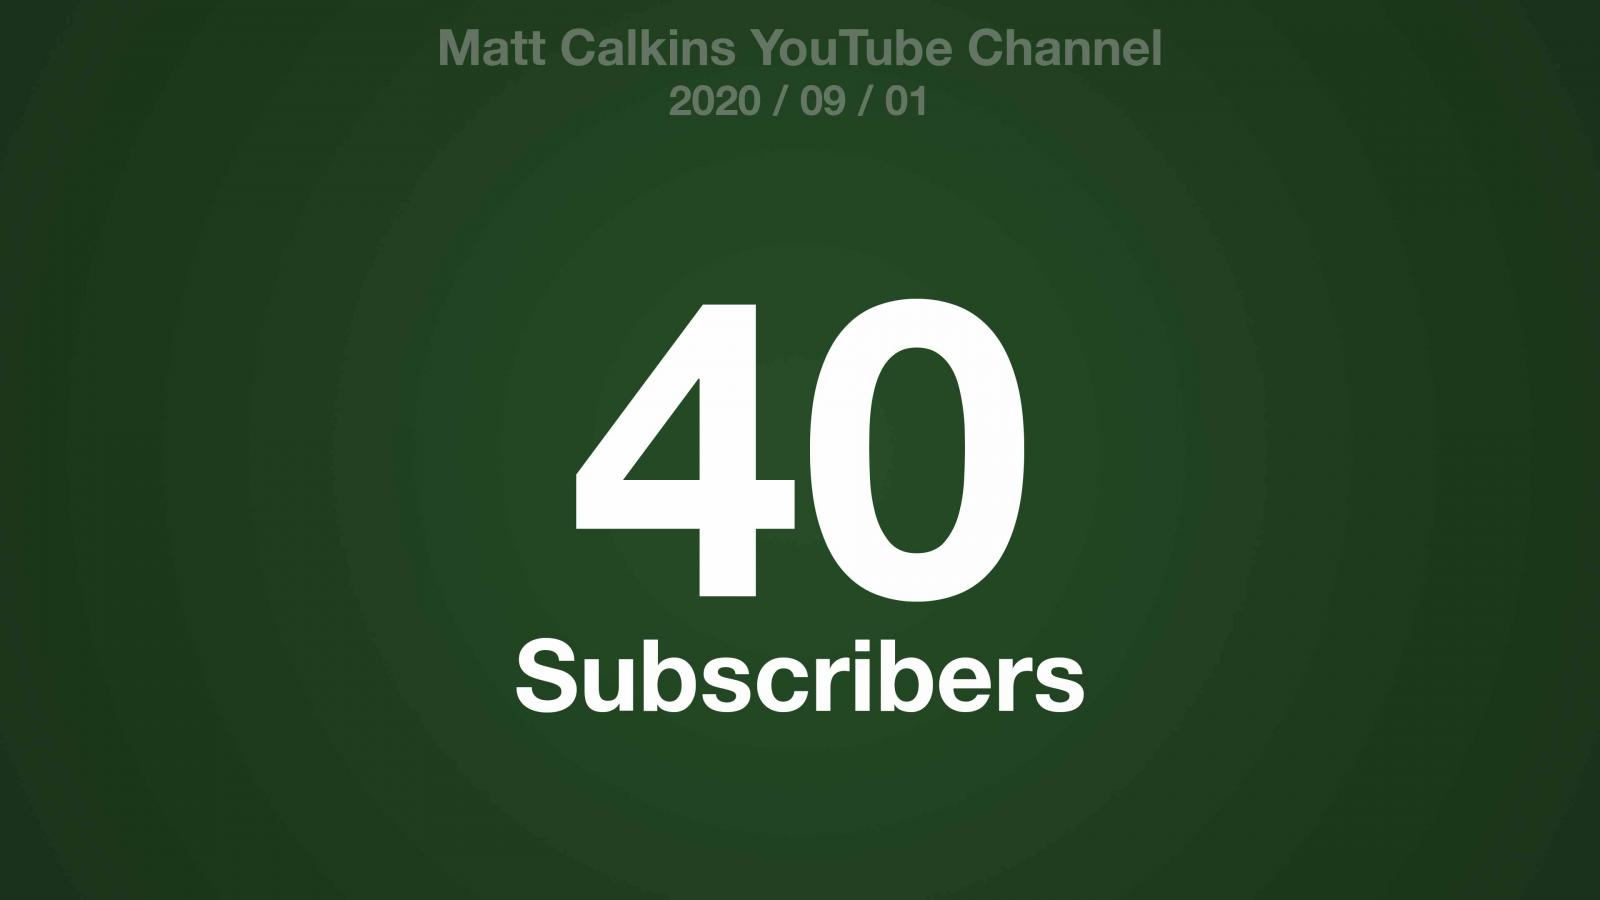 A green radial gradient with the text: Matt Calkins YouTube Channel 2020/09/01 40 Subscribers